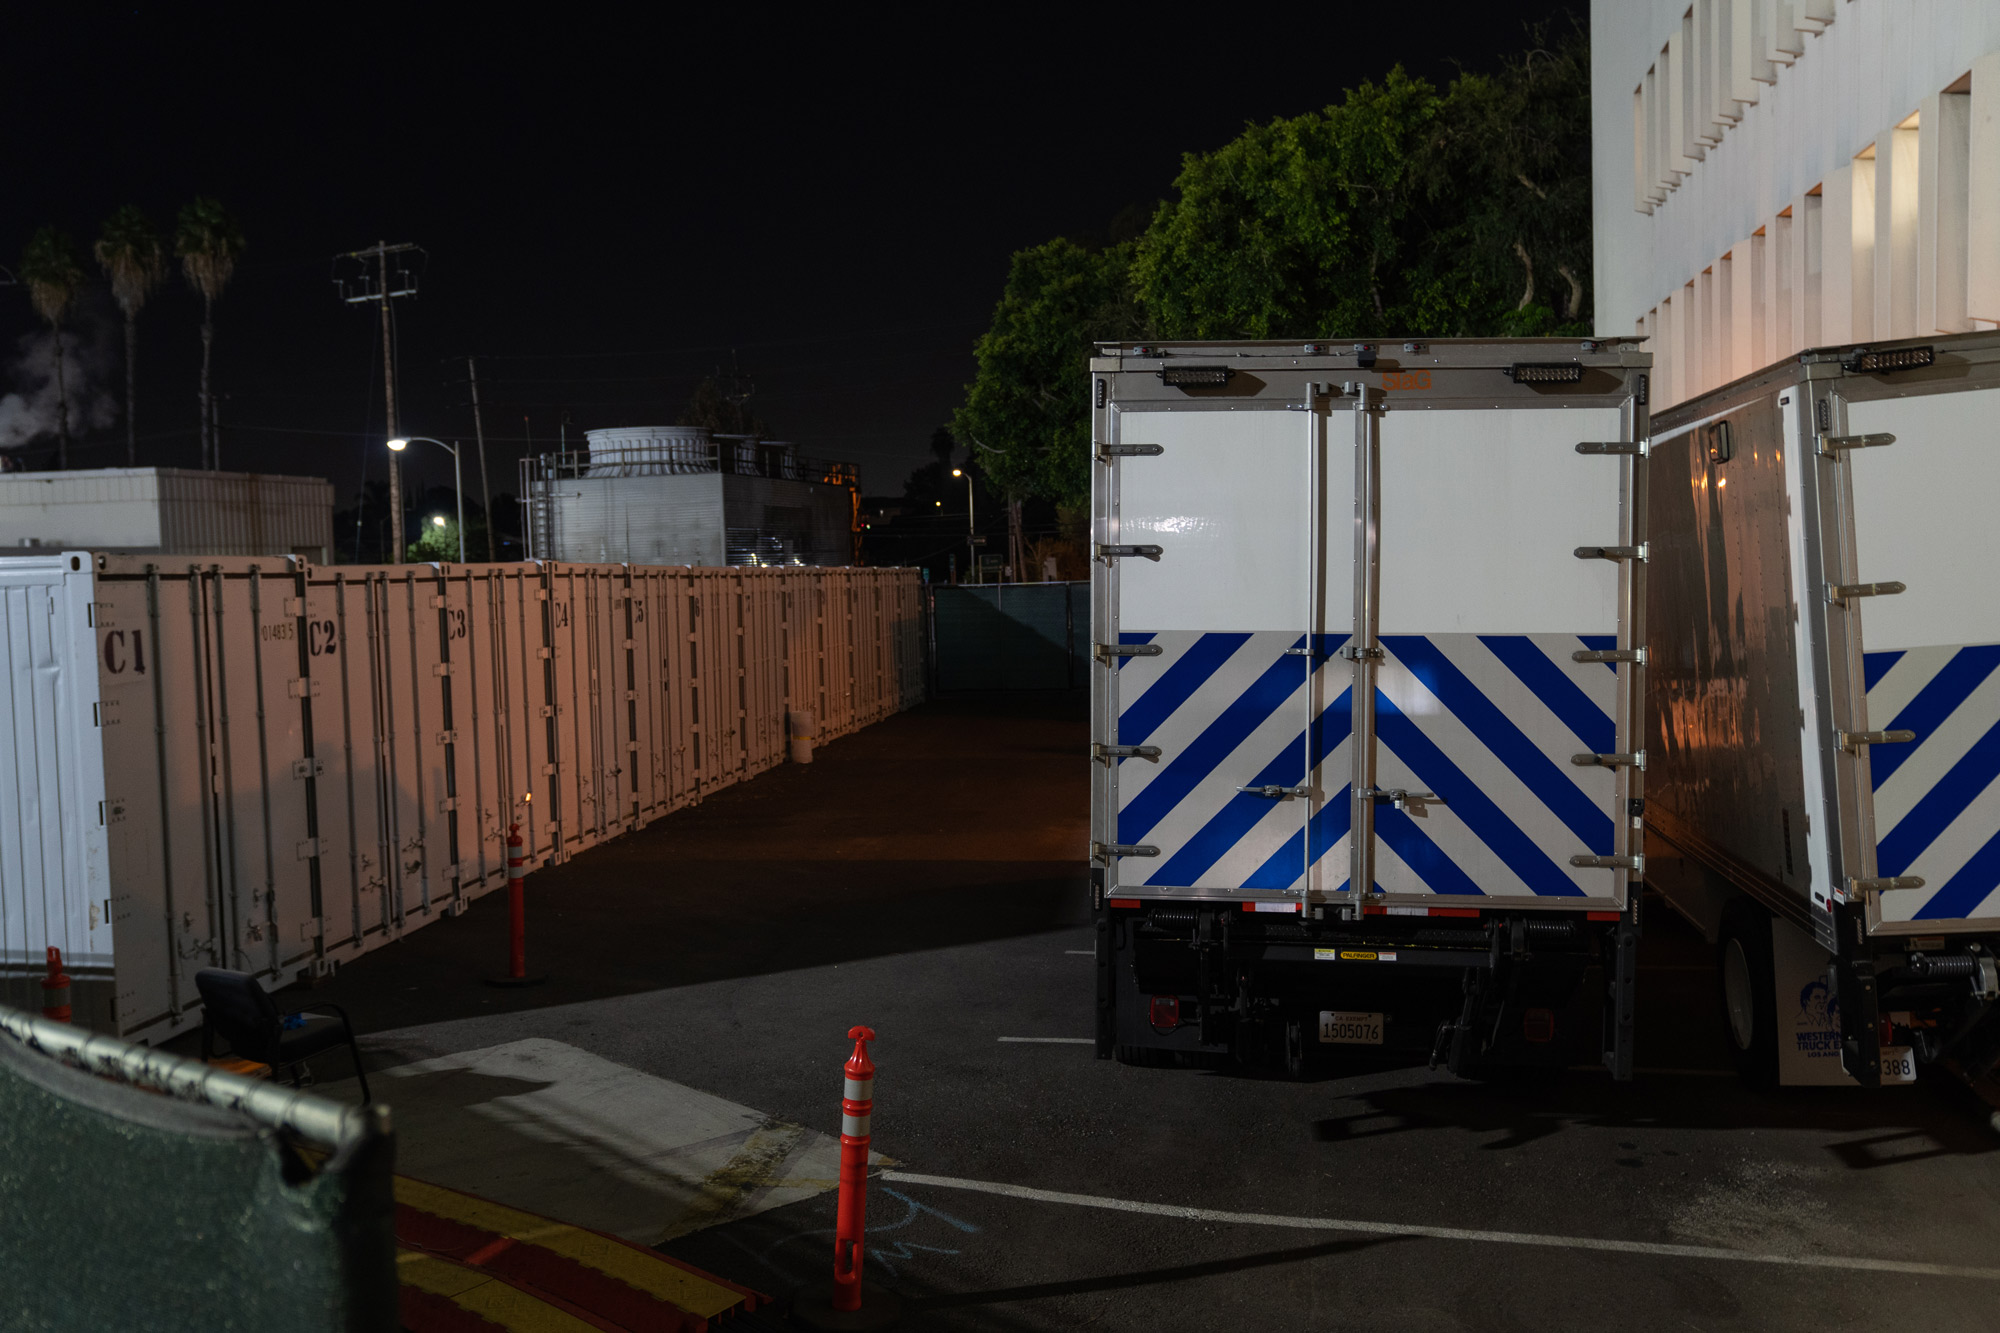 Refrigerated overflow morgue trailers and containers sit outside the Los Angeles County Department of Medical Examiner-Coroner in Los Angeles on January 6.